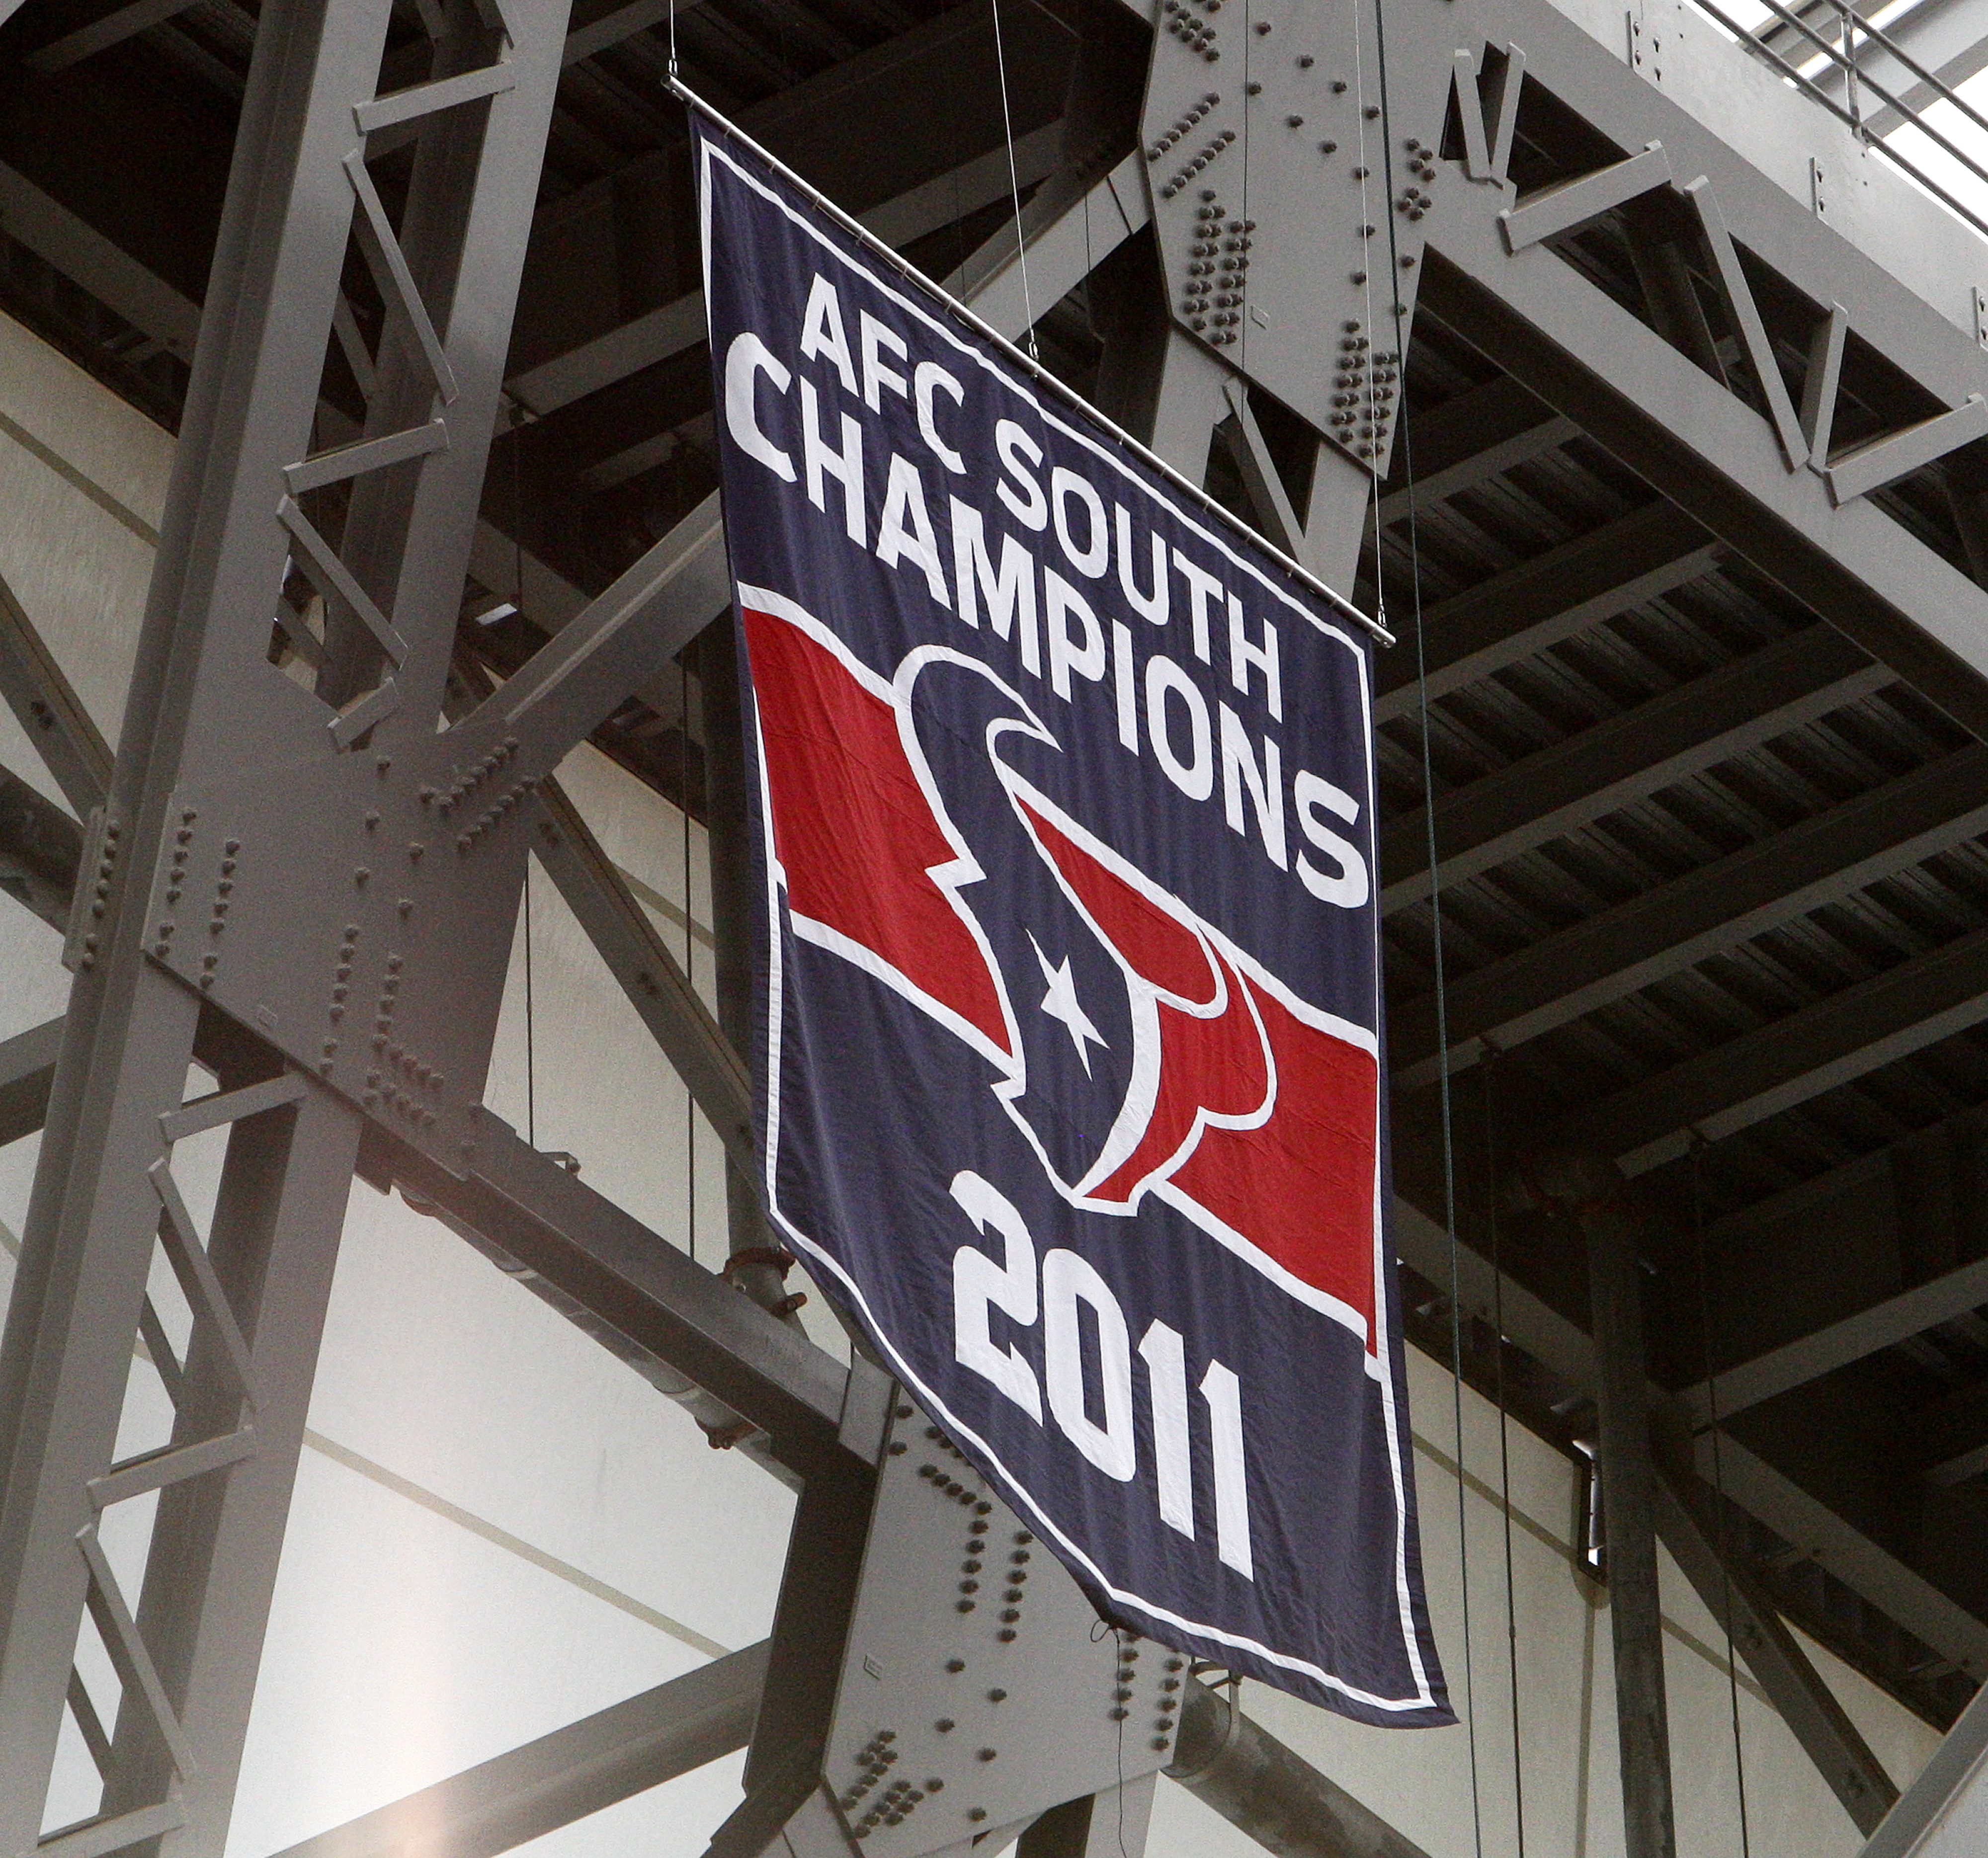 This banner looks a little lonely. Let's get some friends for it to hang out with.